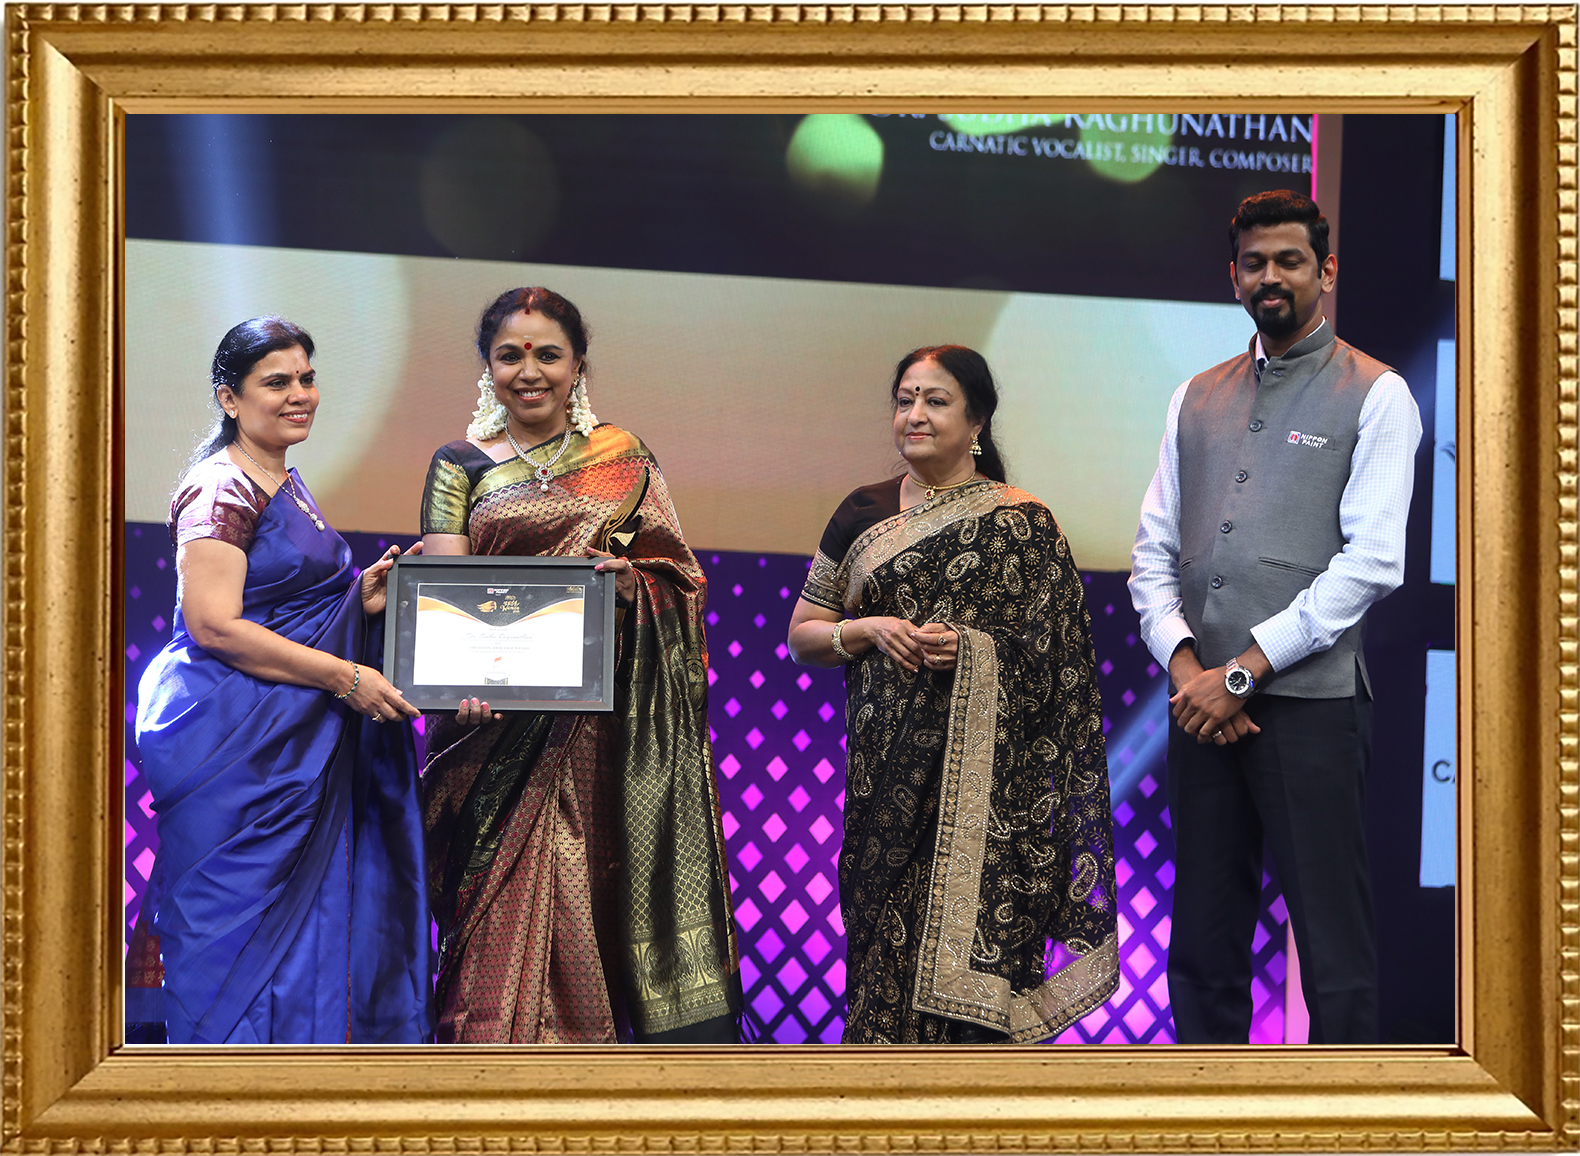 Hindu Heritage Award, recognizing excellence in art and culture